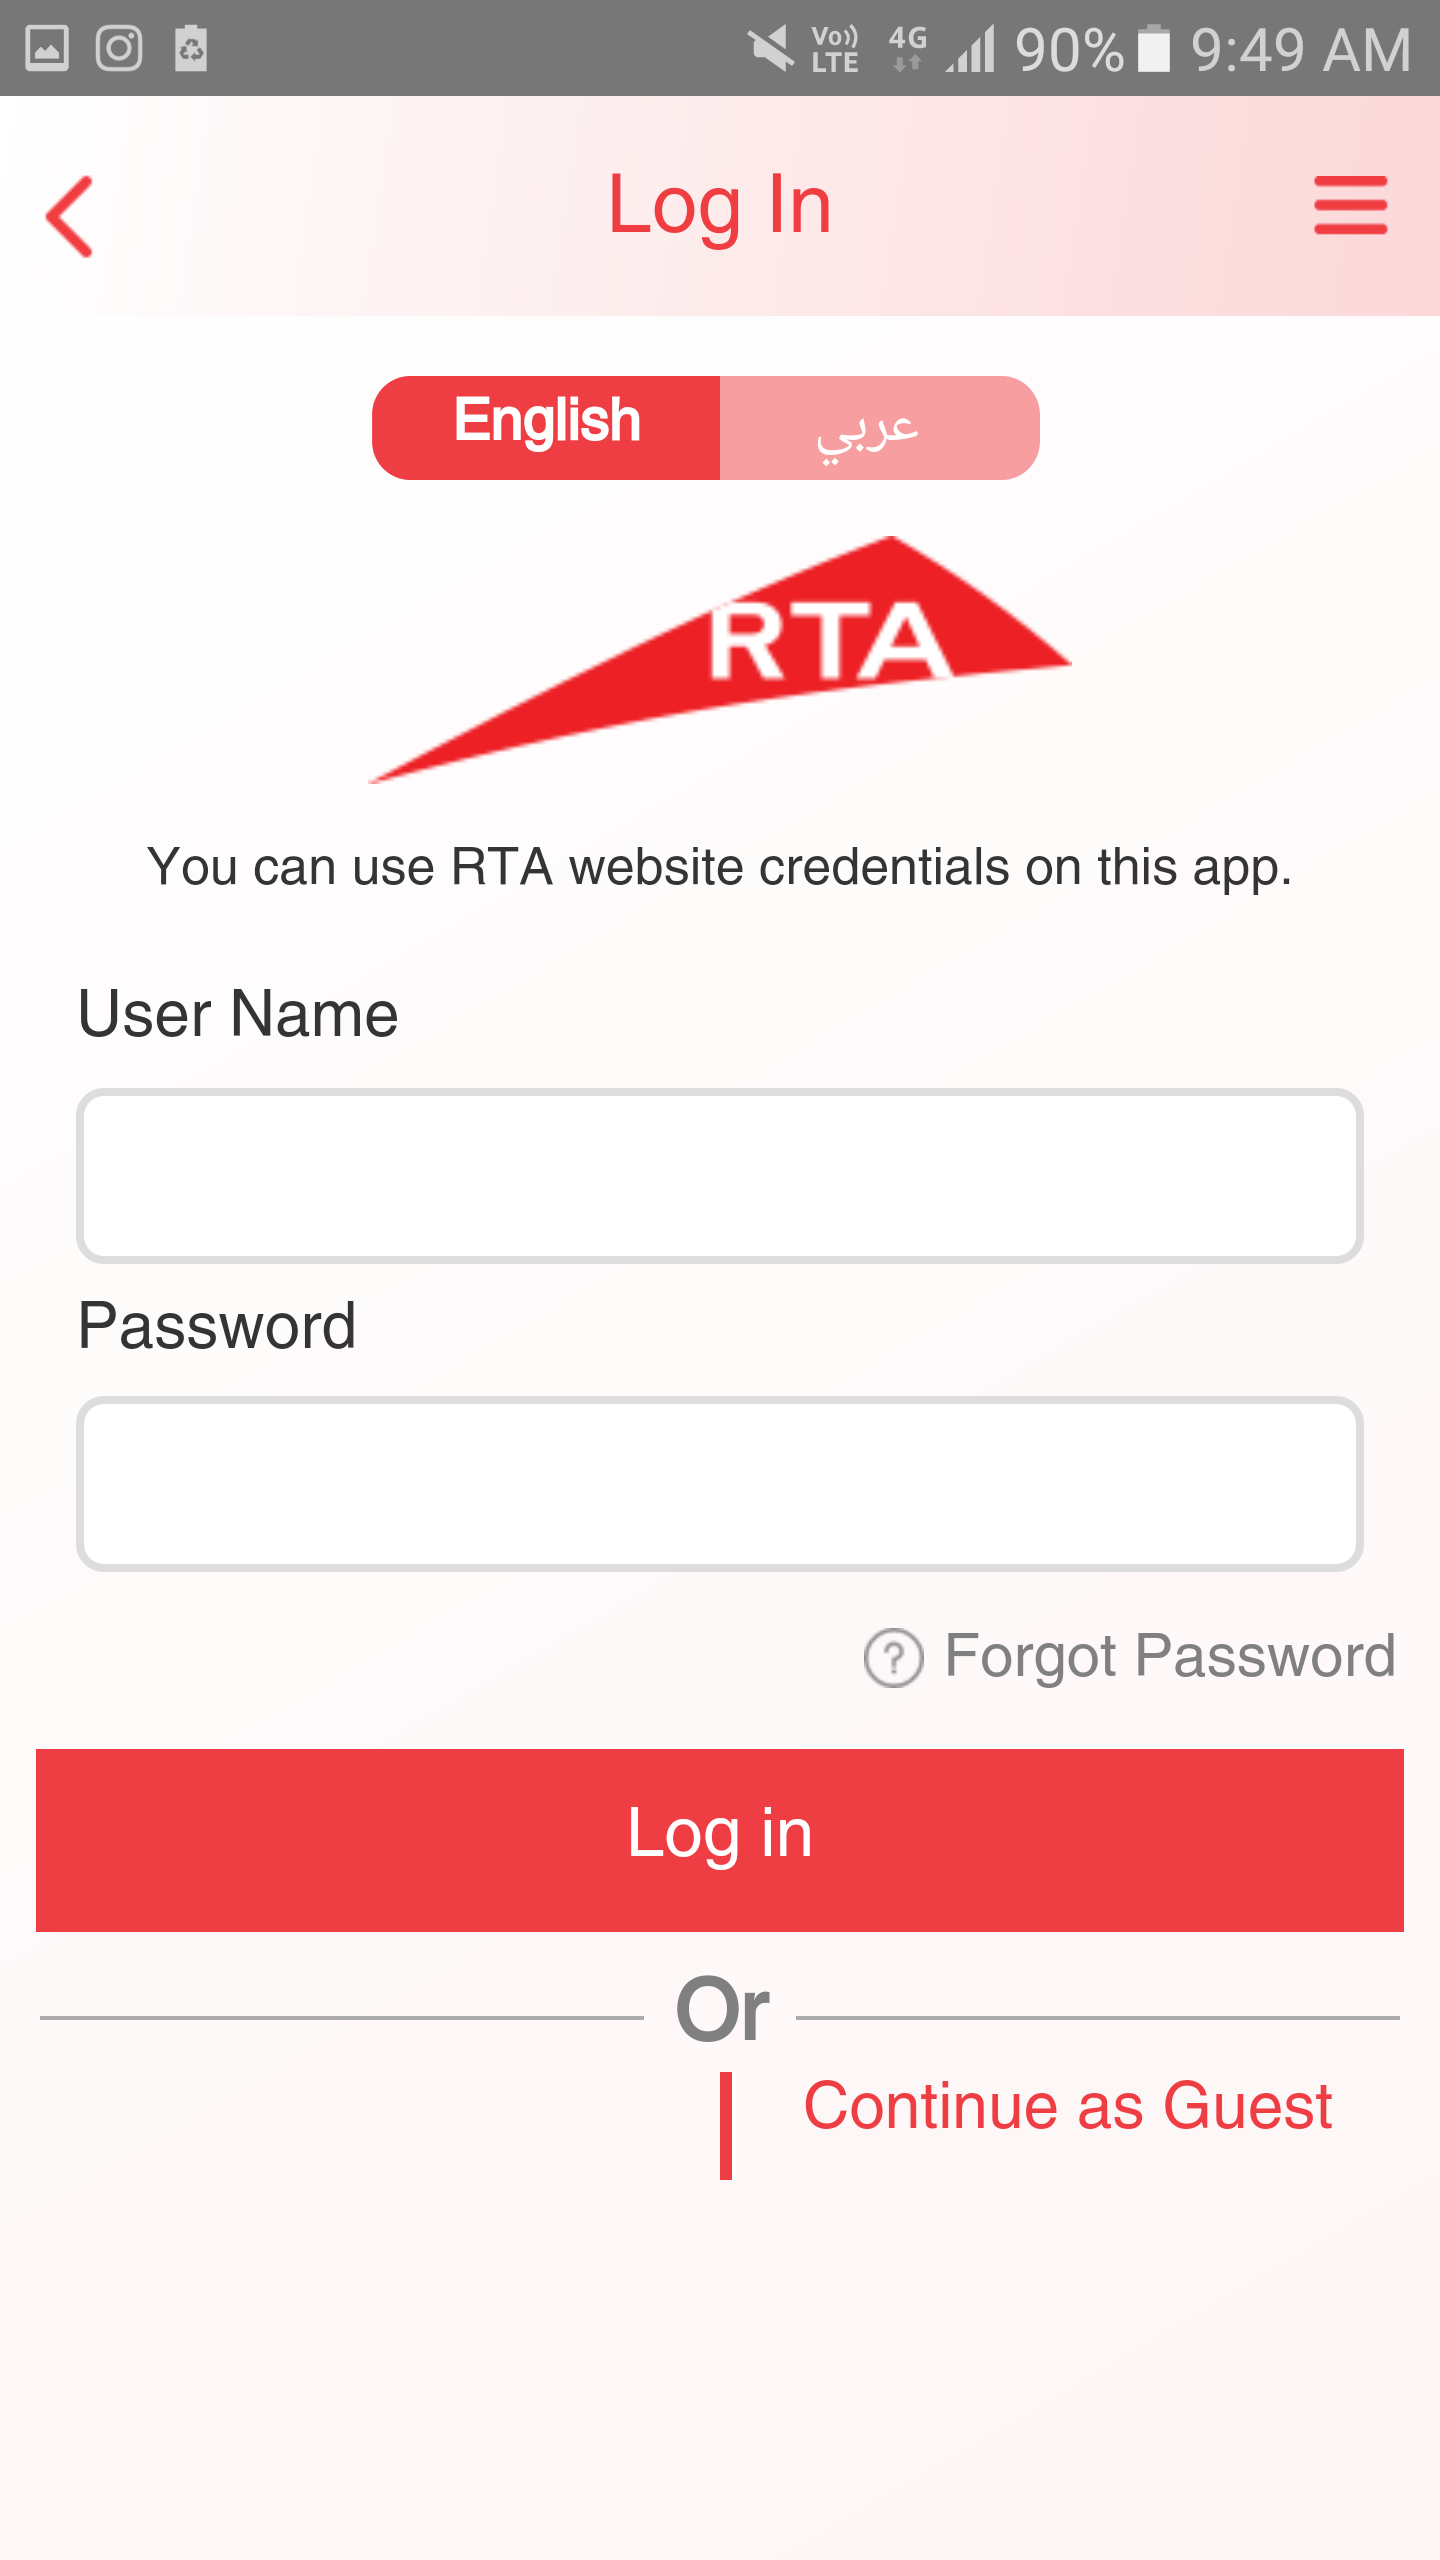 Corporate services app login screen